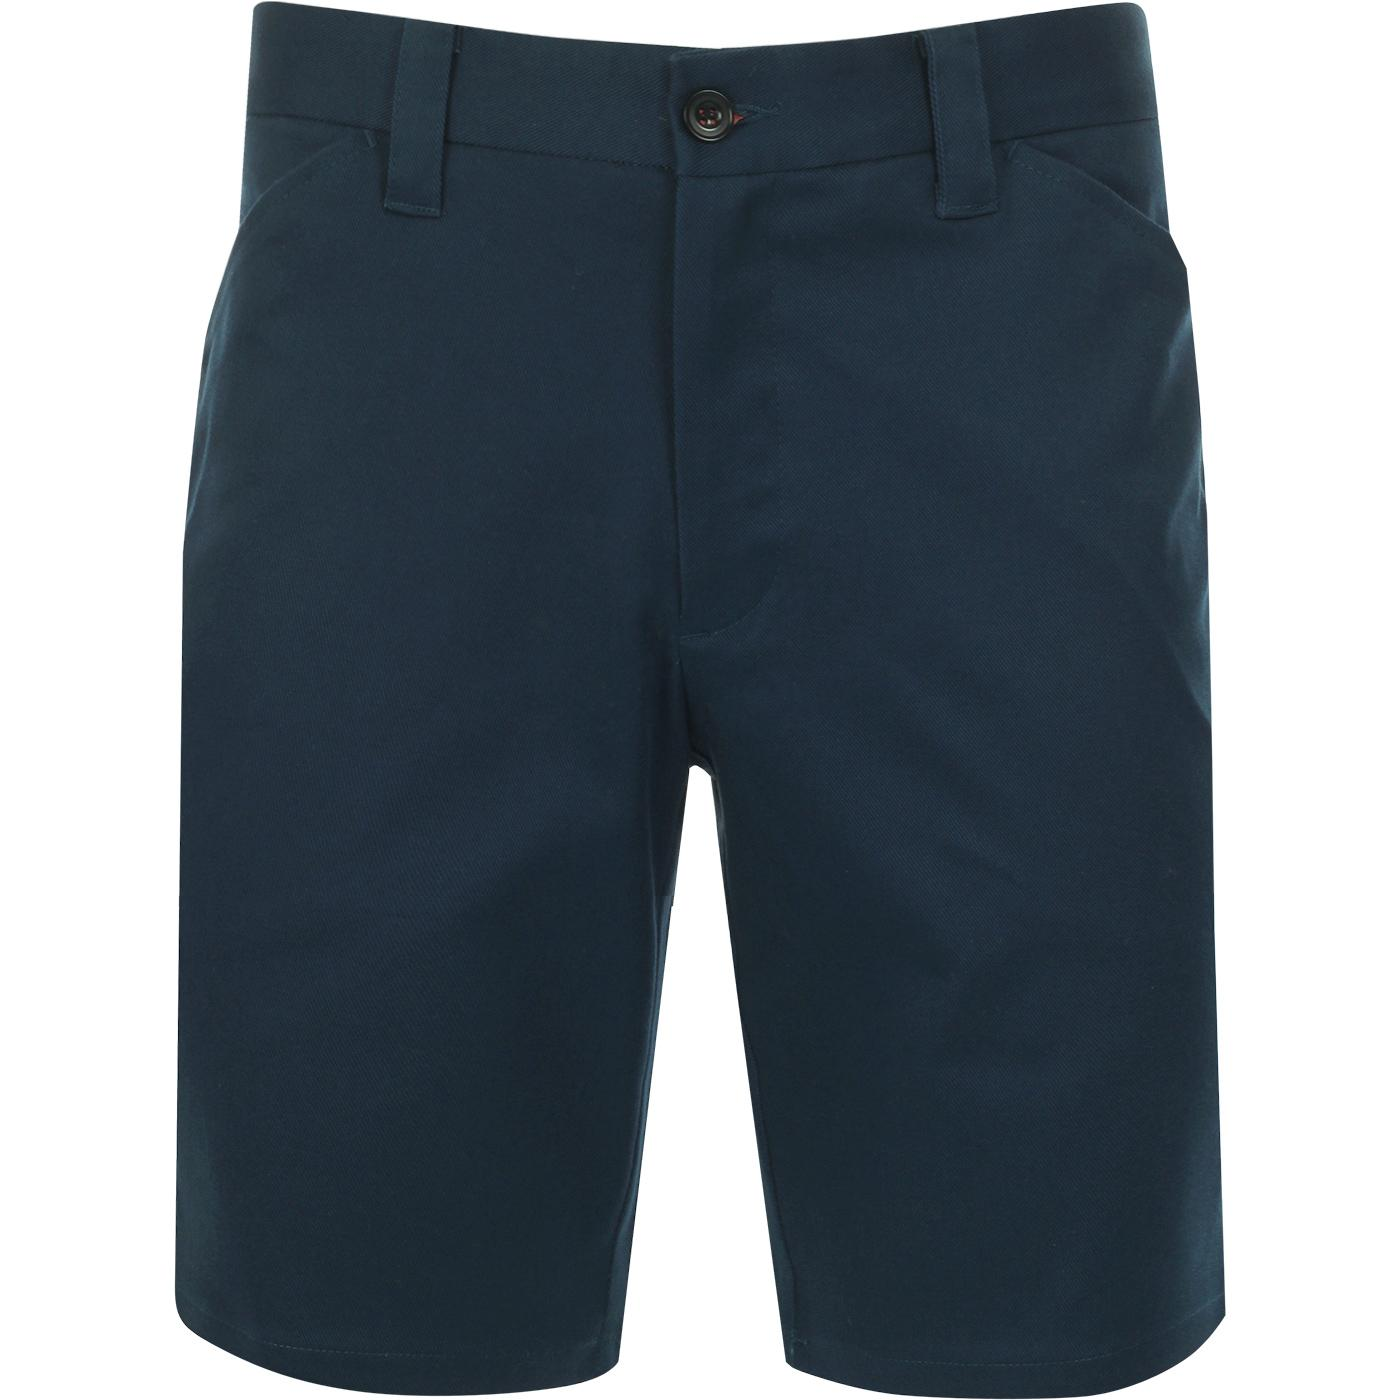 Hawk FARAH Men's Retro 4 Pocket Chino Shorts TEAL